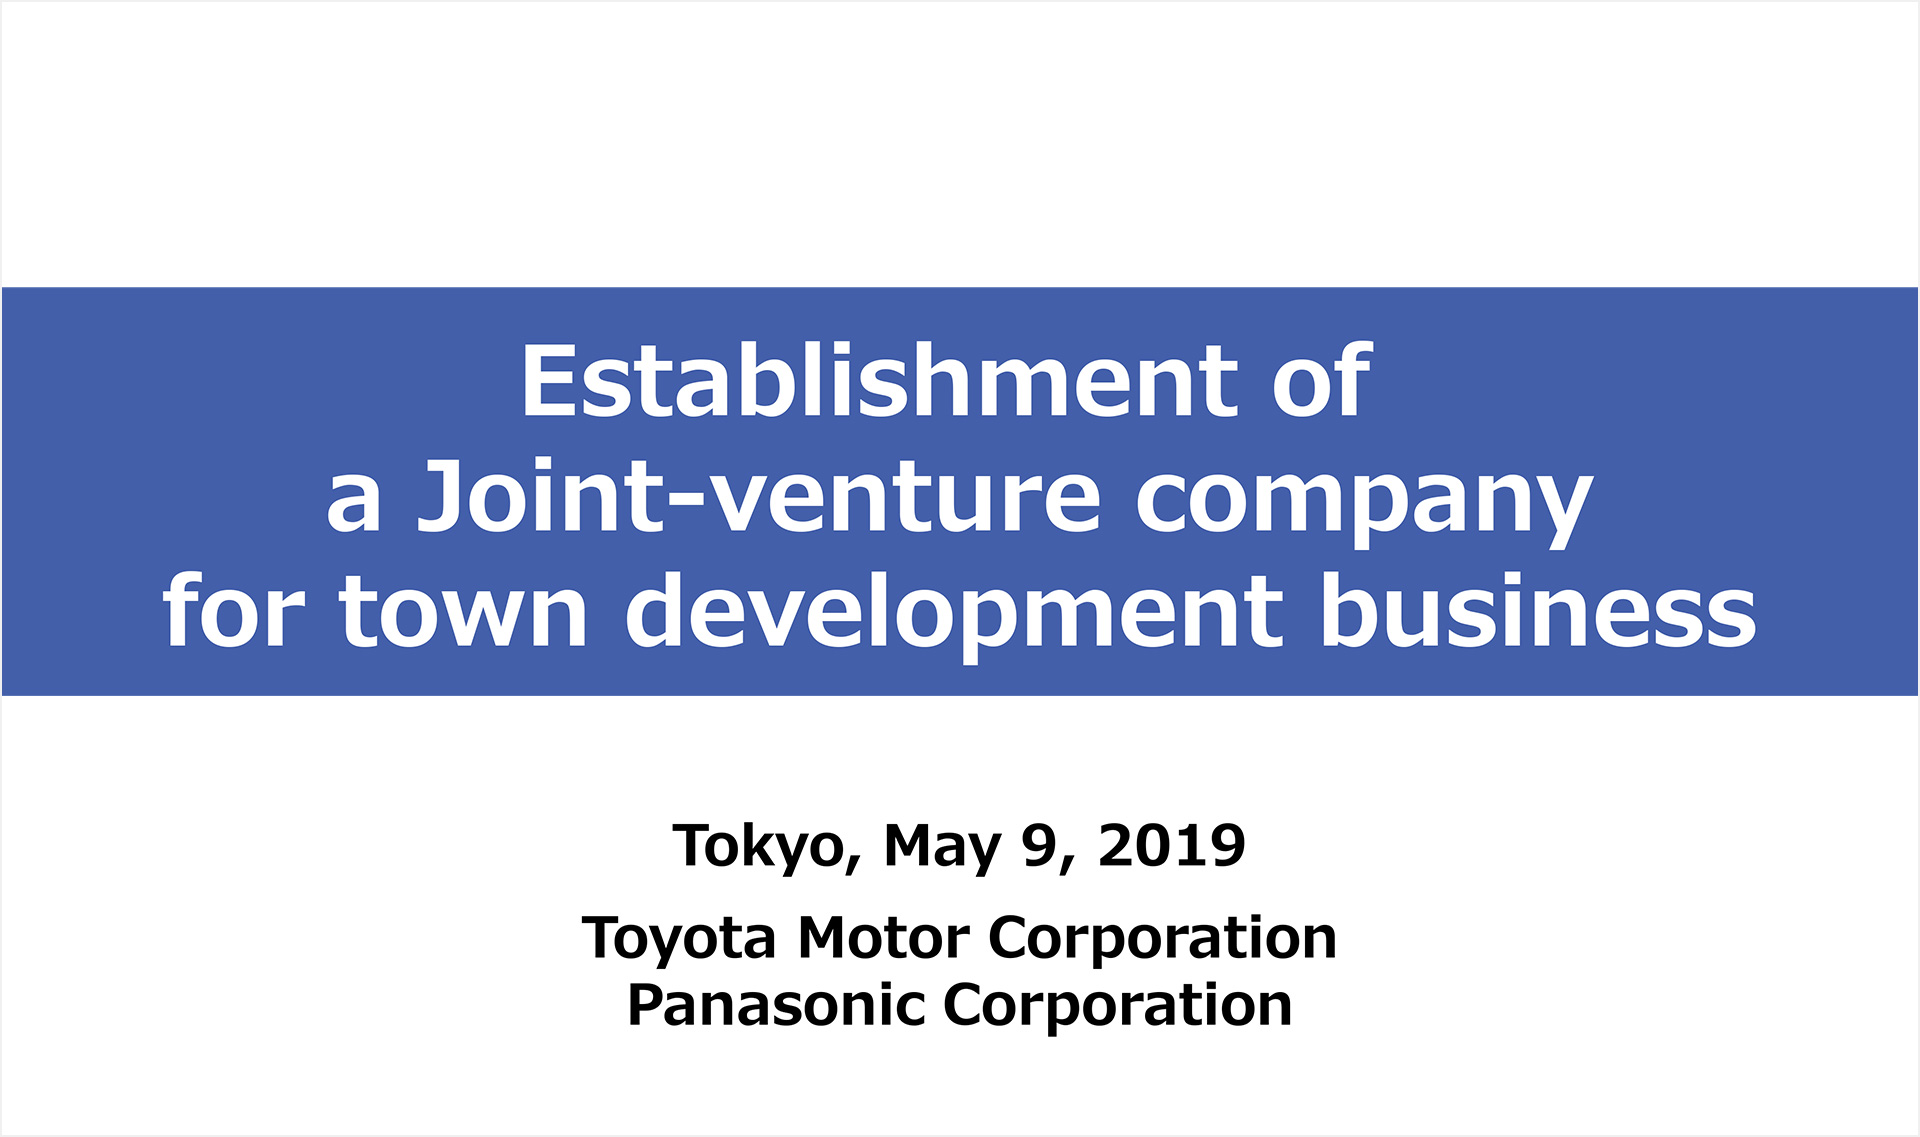 Establishment of a Joint-venture company for town development business